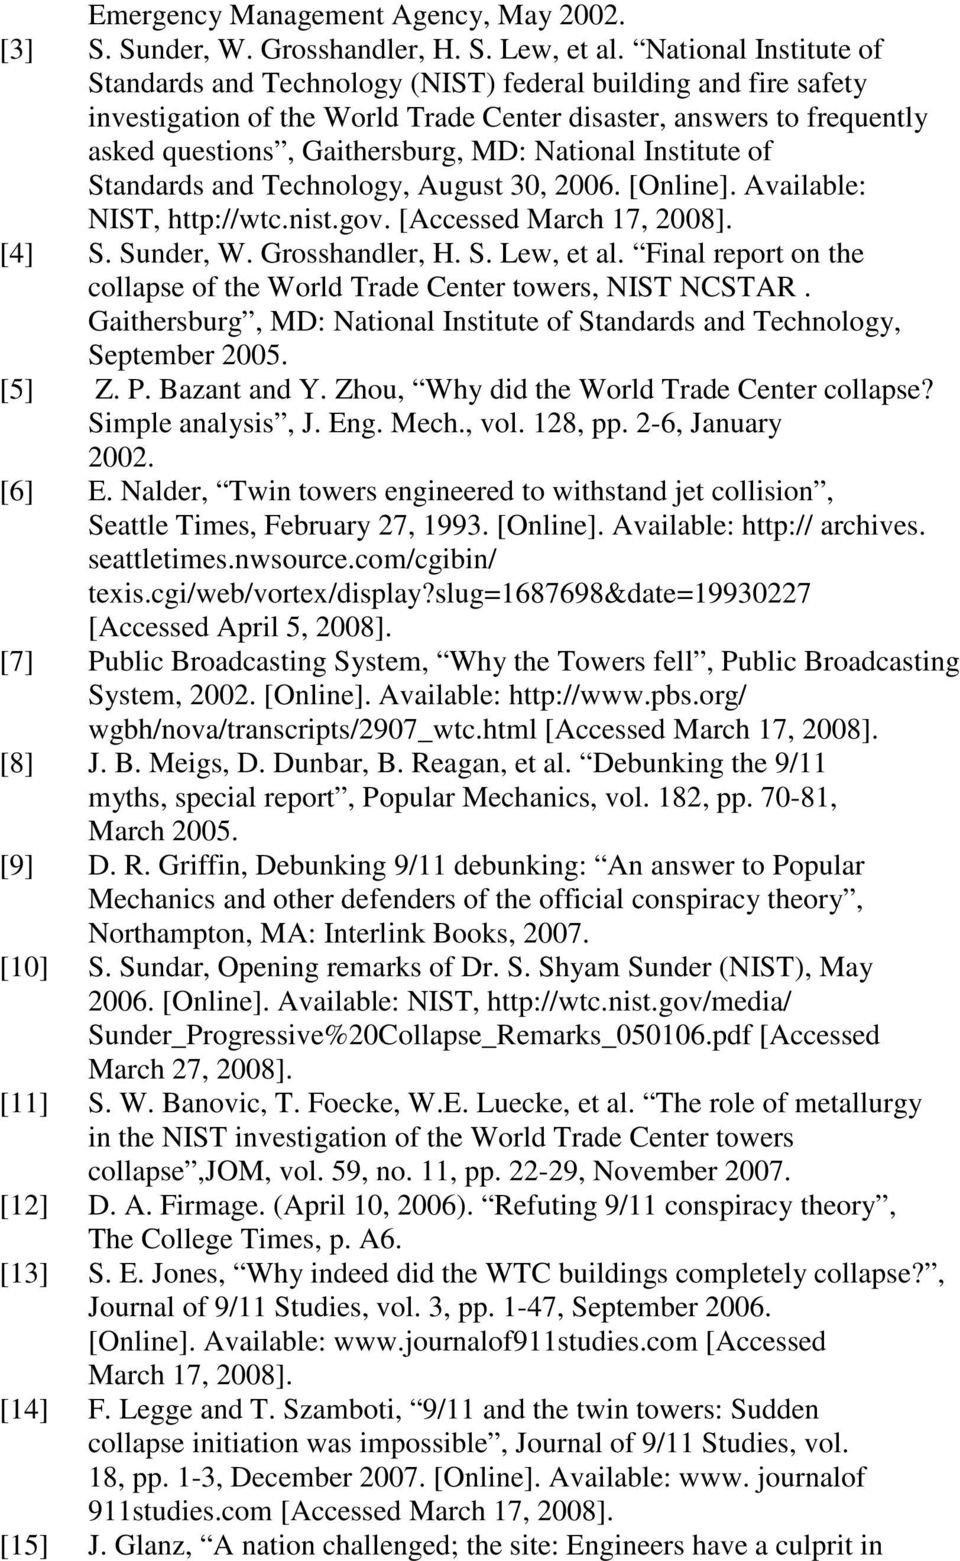 National Institute of Standards and Technology, August 30, 2006. [Online]. Available: NIST, http://wtc.nist.gov. [Accessed March 17, 2008]. [4] S. Sunder, W. Grosshandler, H. S. Lew, et al.